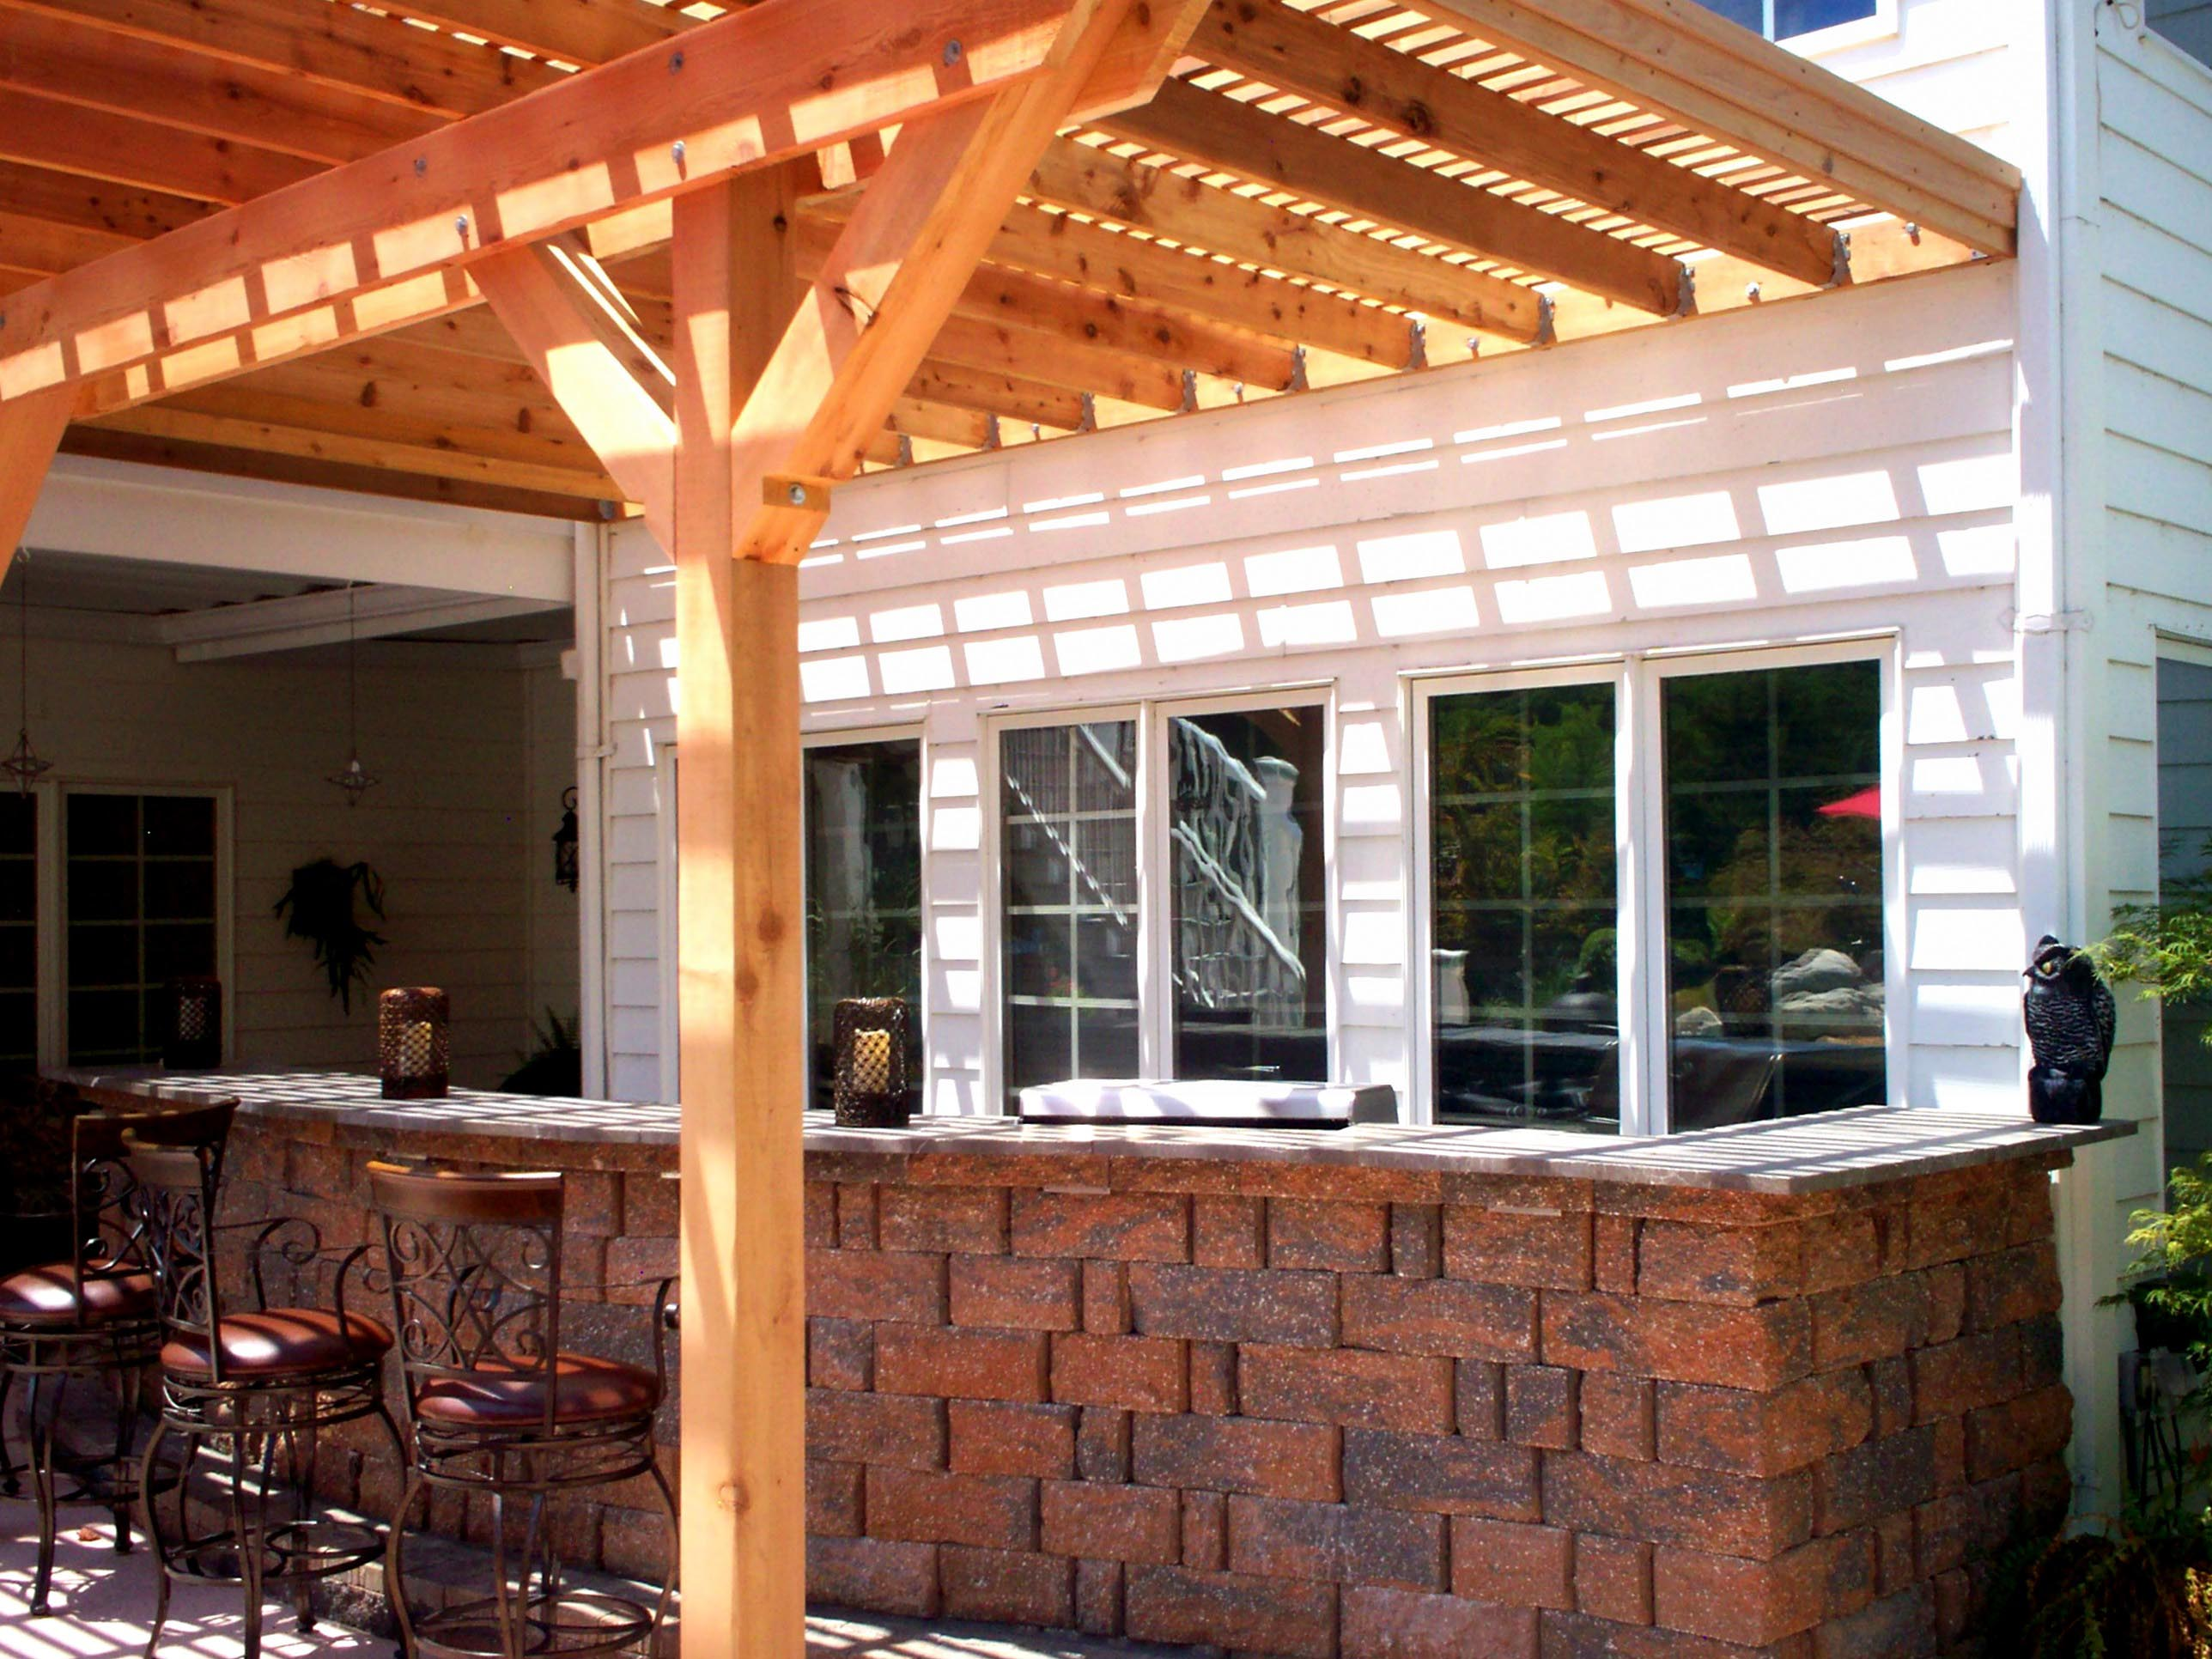 Covering a Pergola for Shade